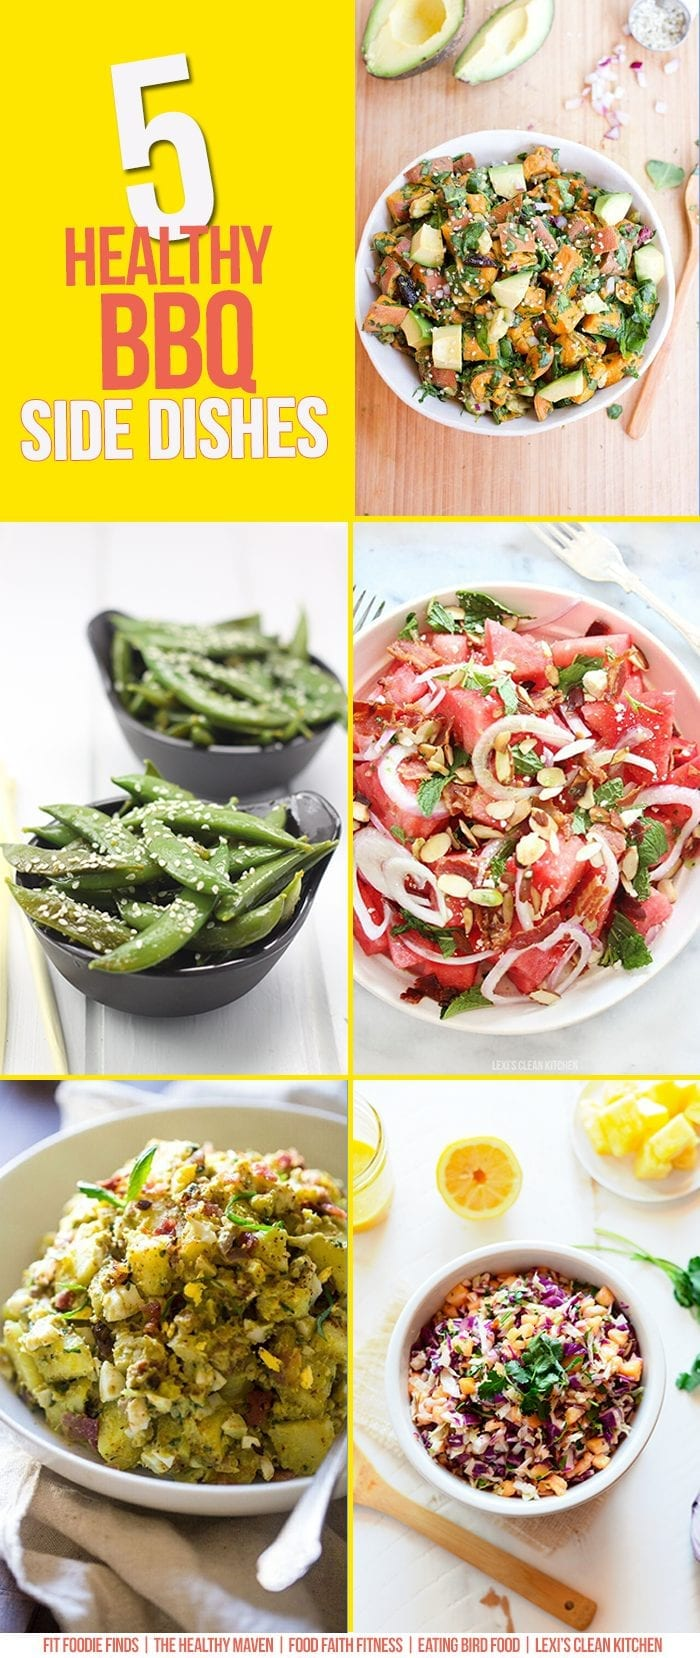 From Coleslaw to Potato Salad, this round-up includes 5 Healthy Side Dish Recipes for your next BBQ! They're all gluten-free, dairy-free and paleo-friendly!